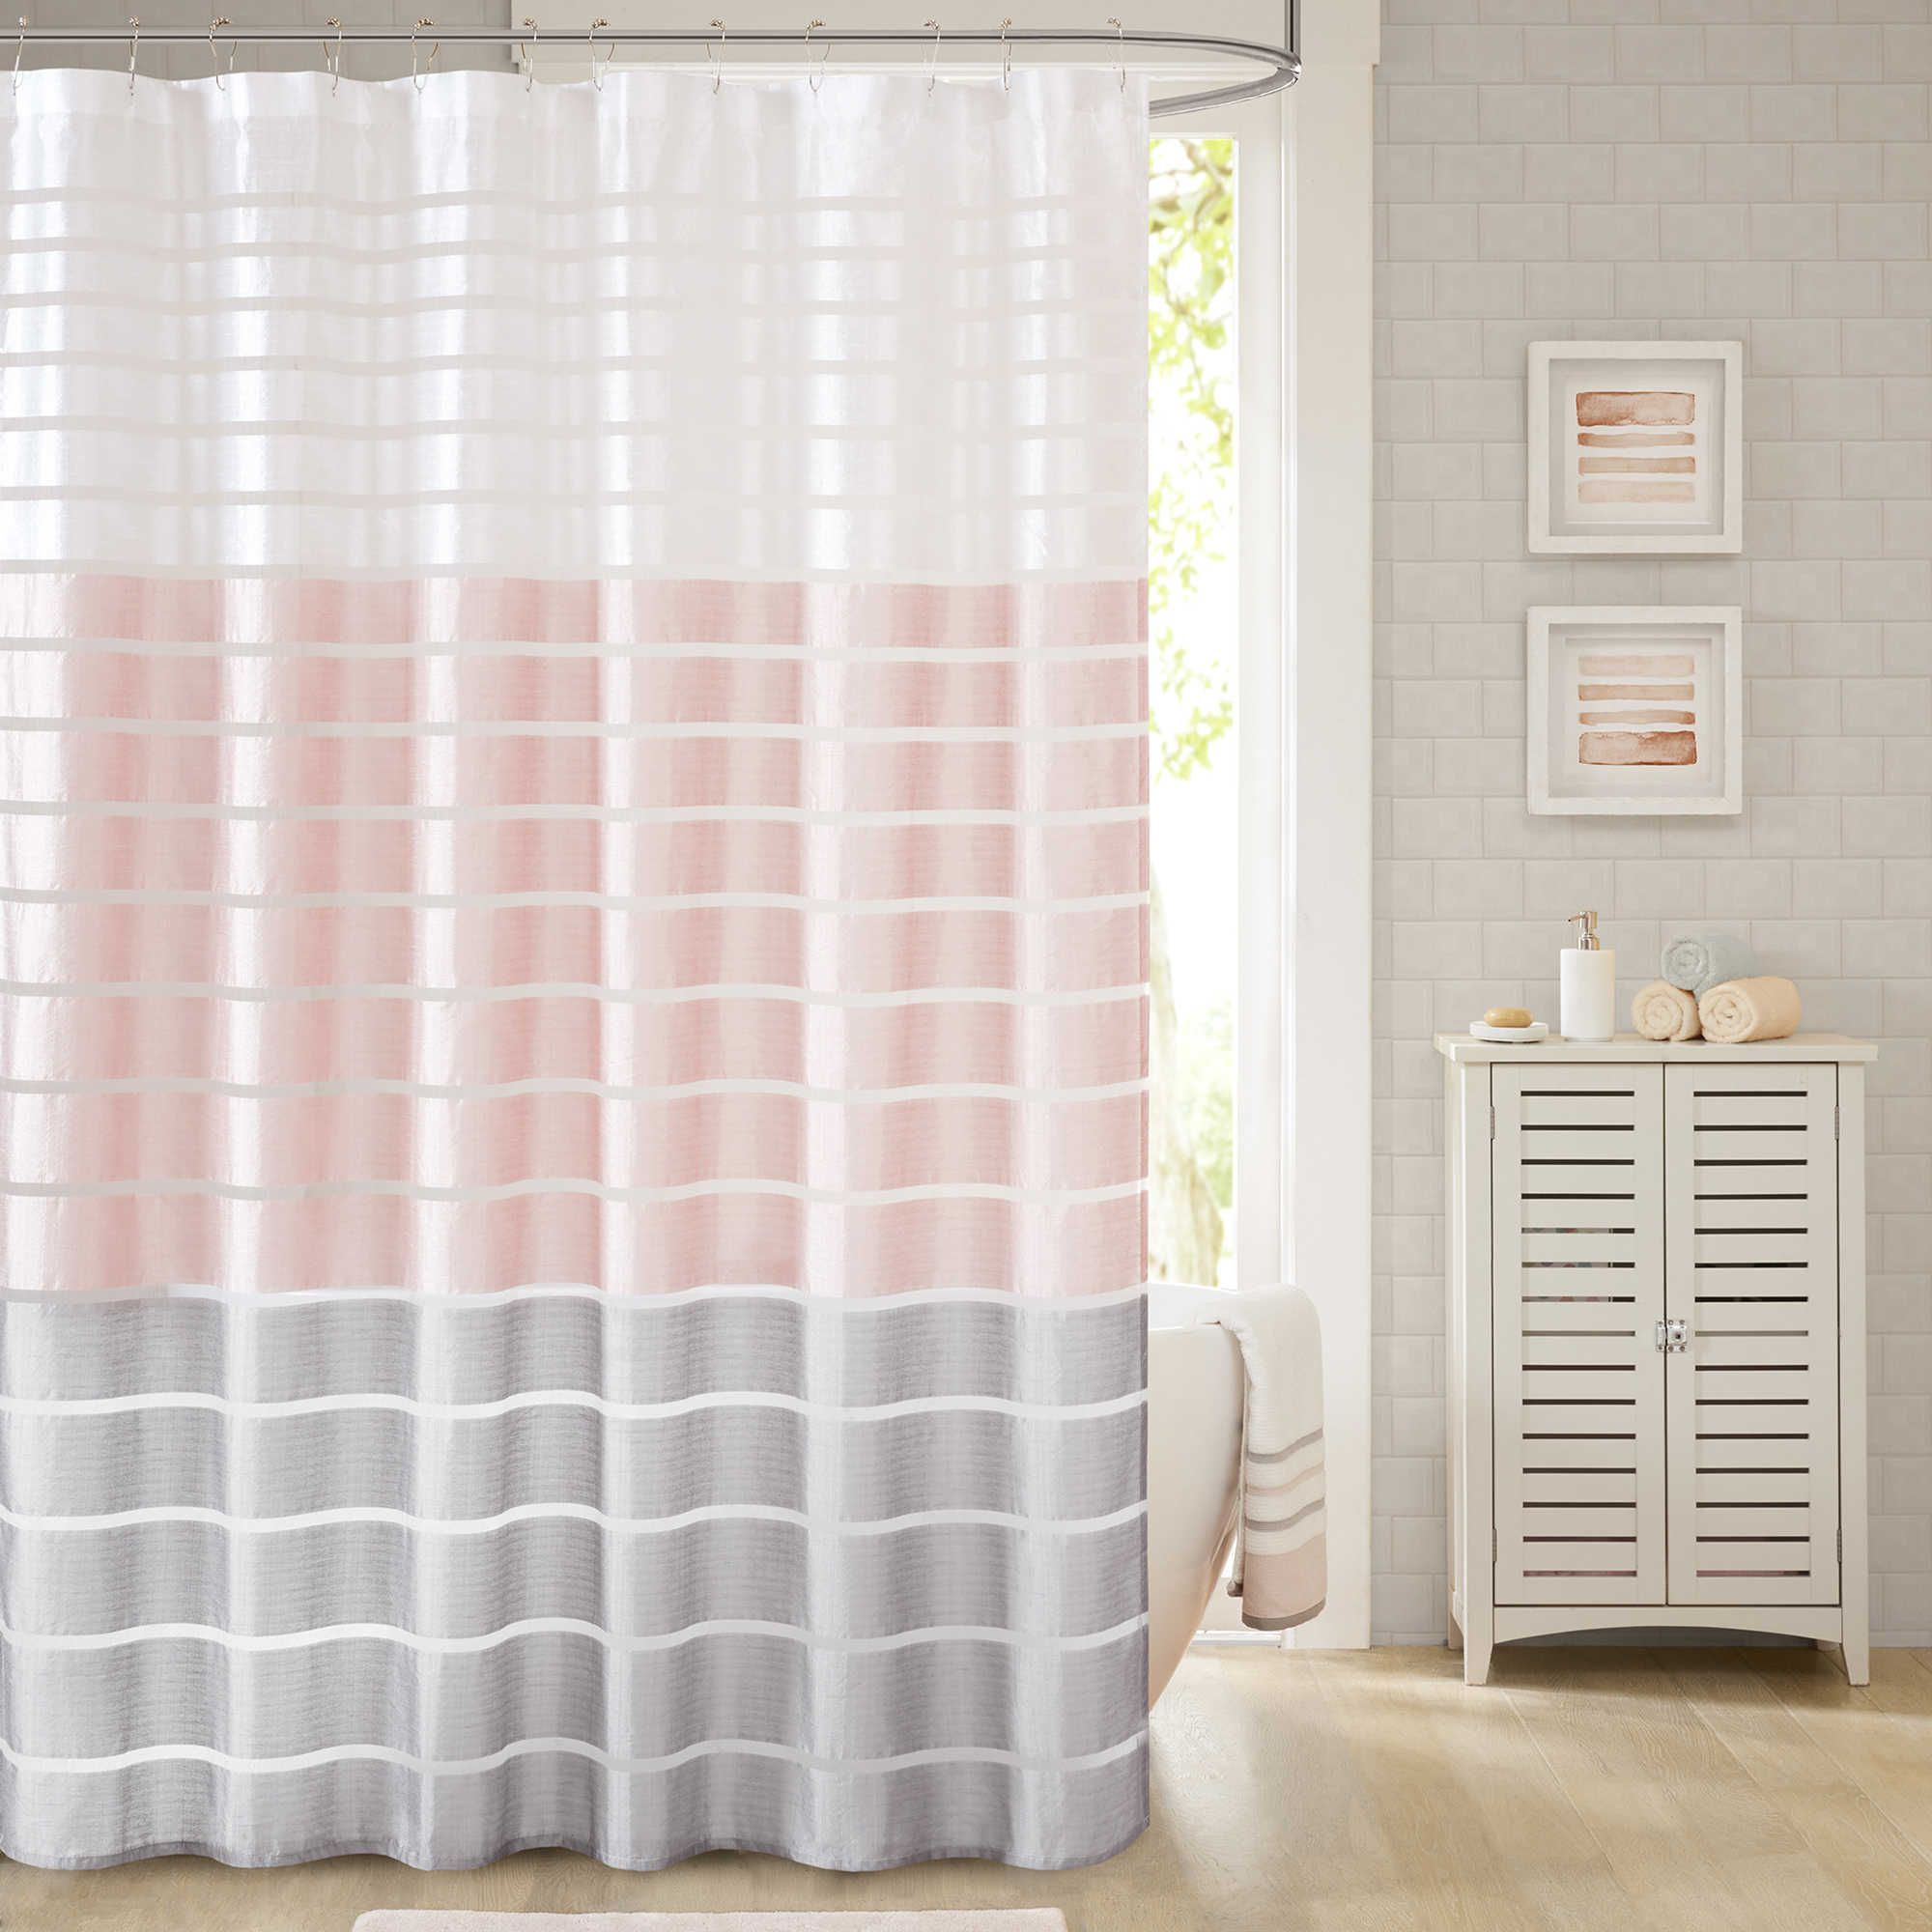 bloomingdales luxury curtain beautiful of outhouse curtains shower unique